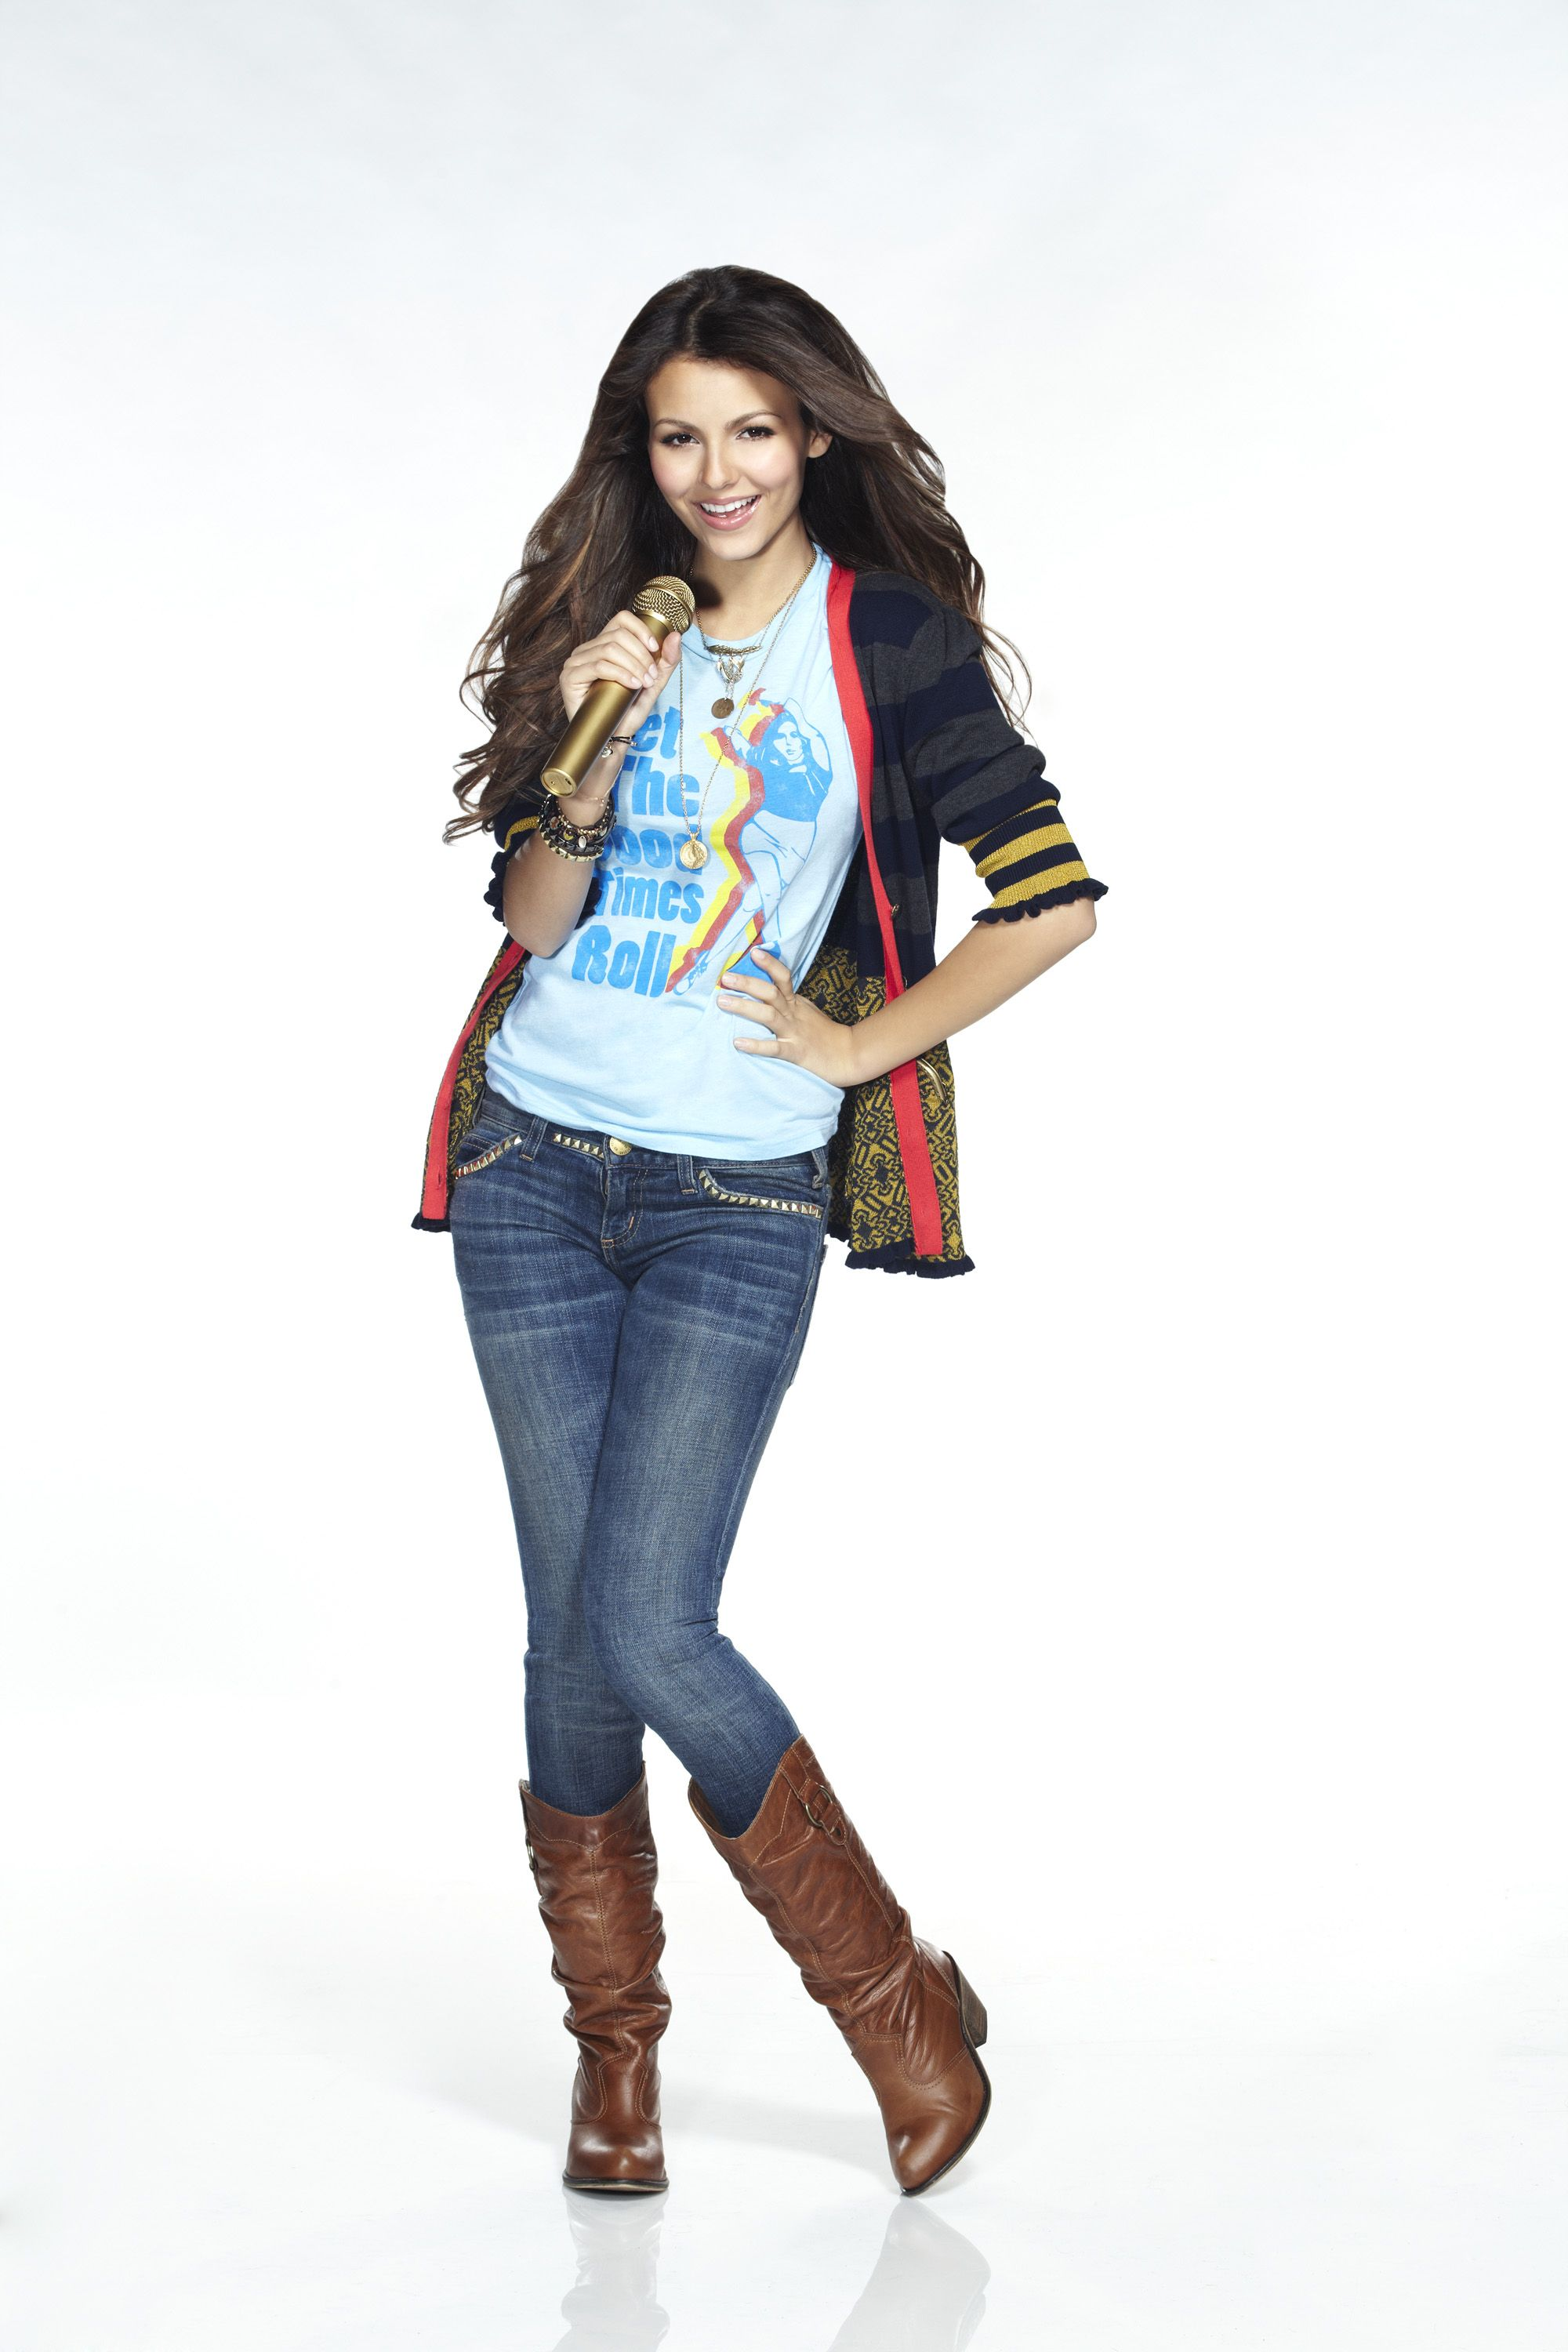 Victoria Justice Victorious Photoshoot